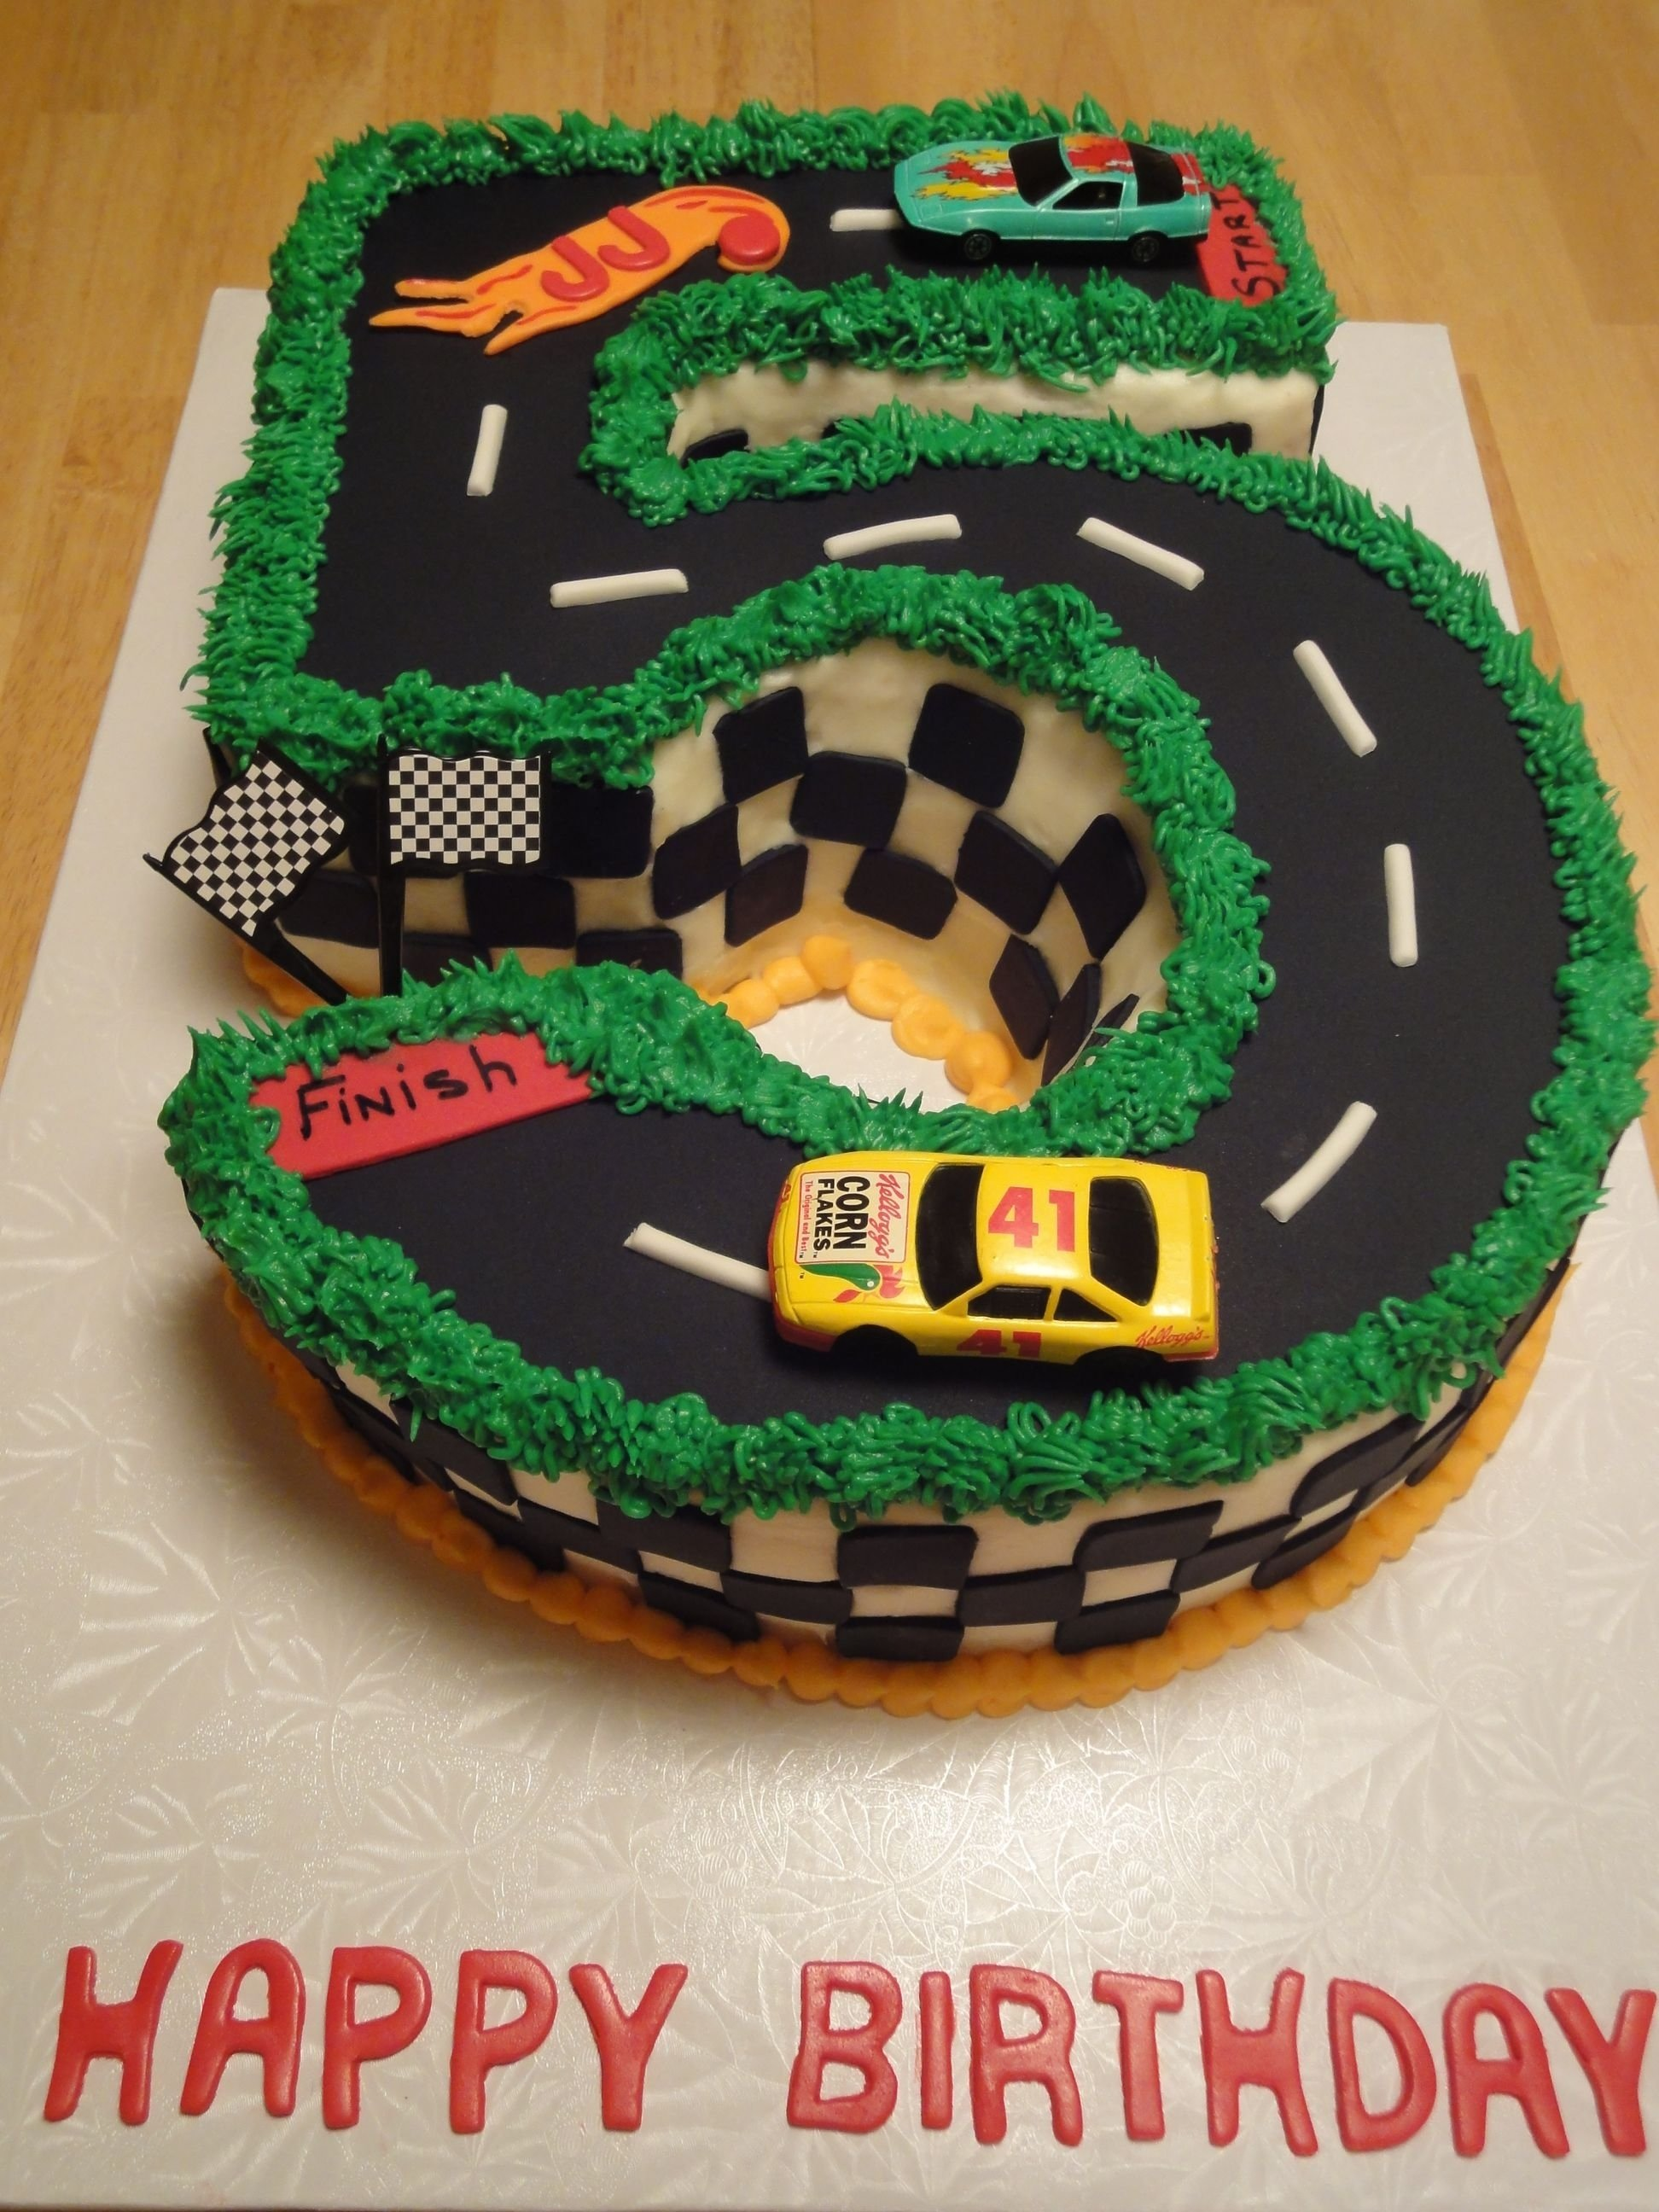 10 Most Recommended 5 Yr Old Boy Birthday Party Ideas happy birthday to a 5 year old boy hot wheels cake janies sweet 1